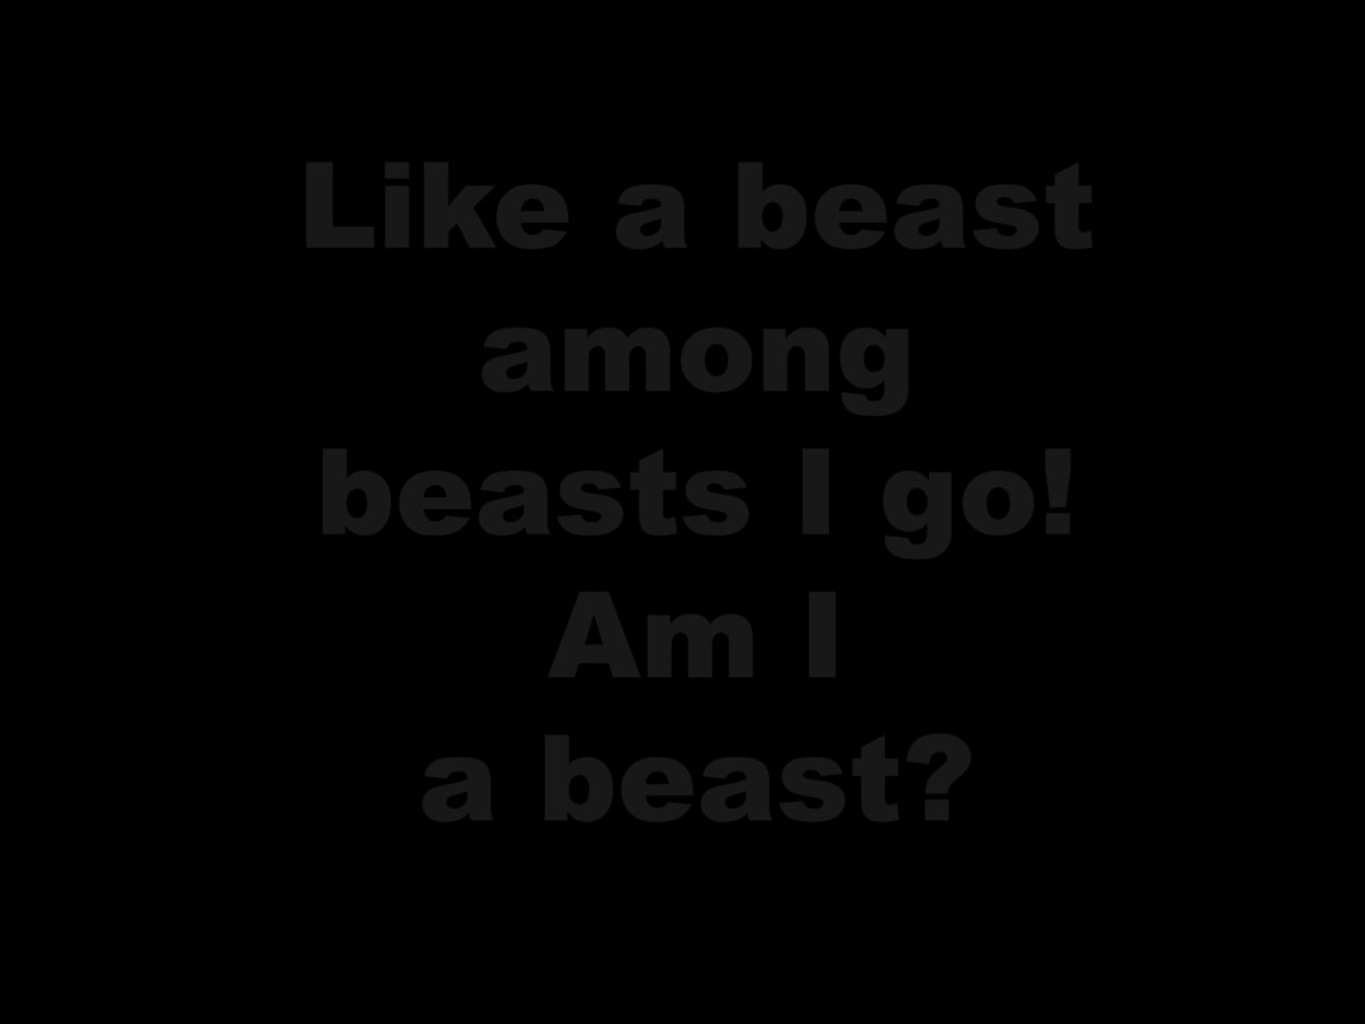 Like a Beast Among Beasts I Go!